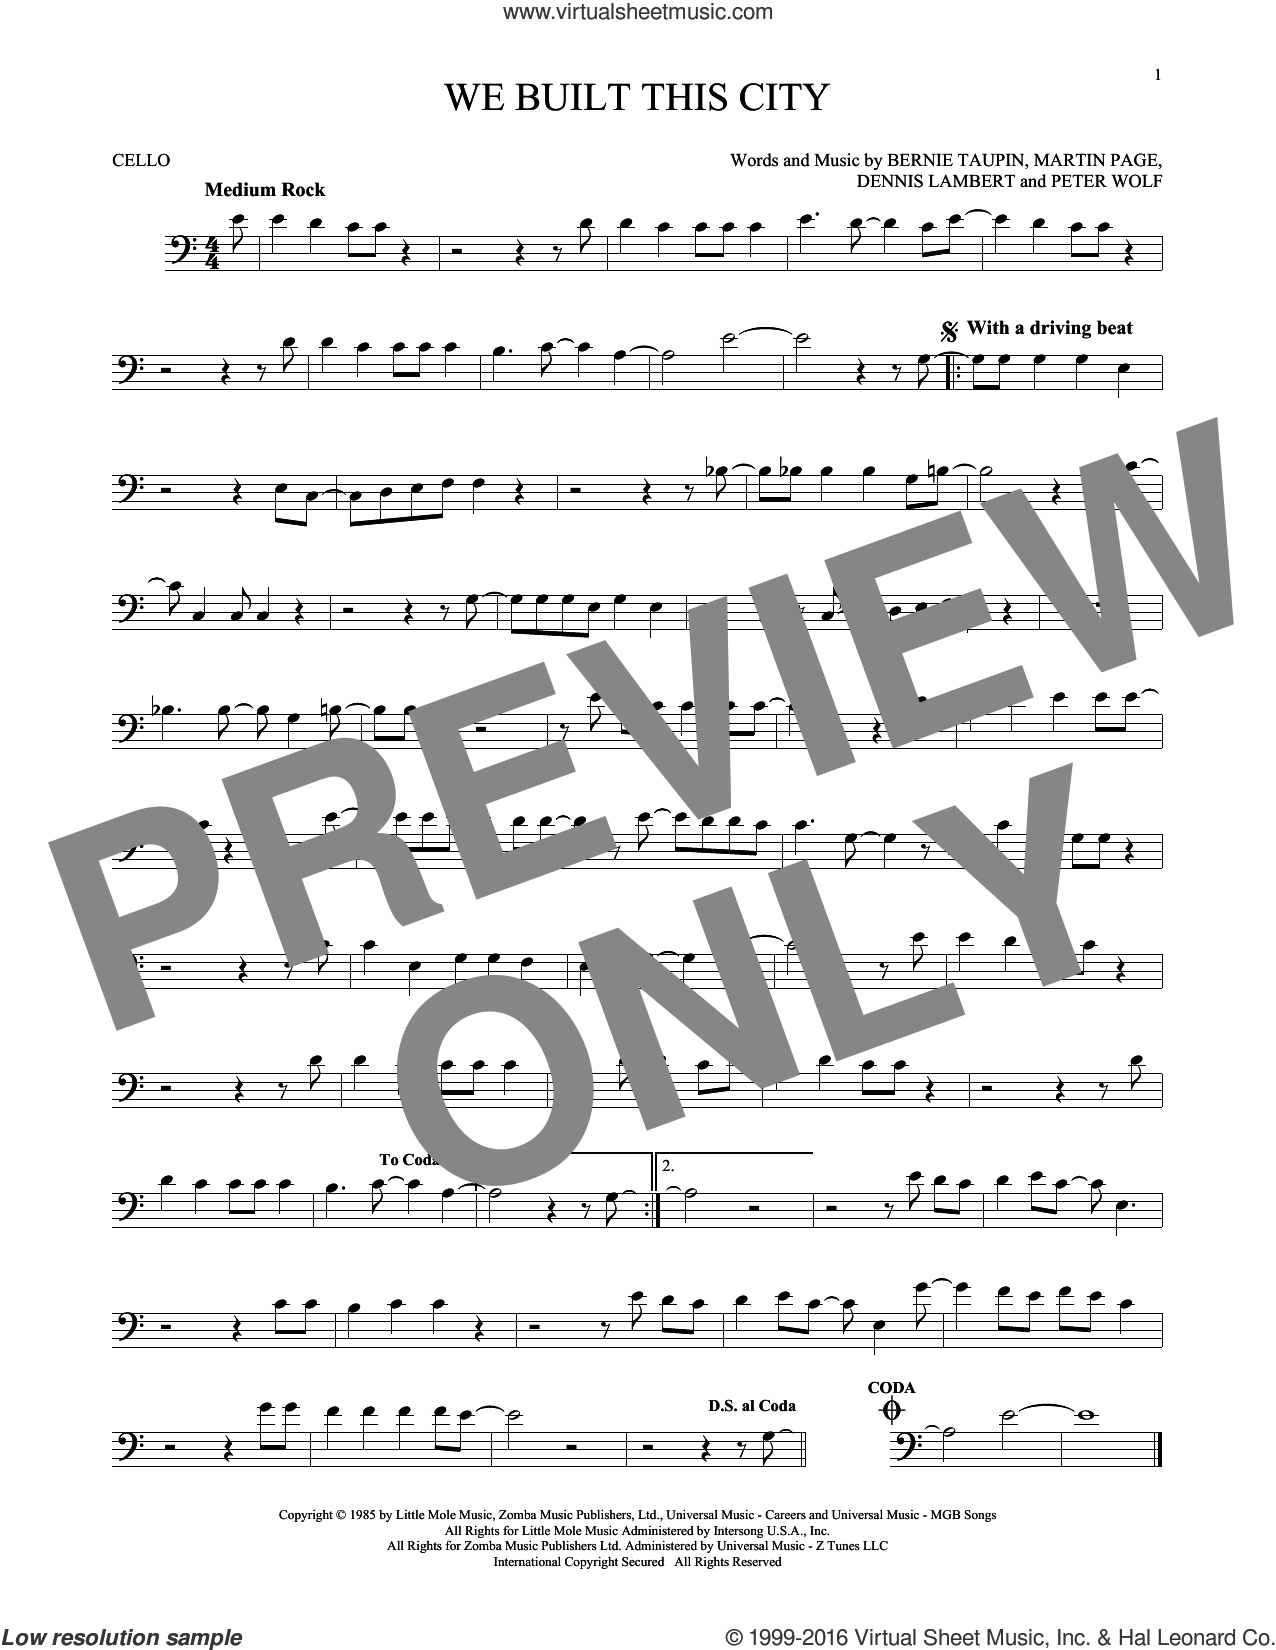 We Built This City sheet music for cello solo by Starship, Bernie Taupin, Dennis Lambert, Martin George Page and Peter Wolf, intermediate skill level